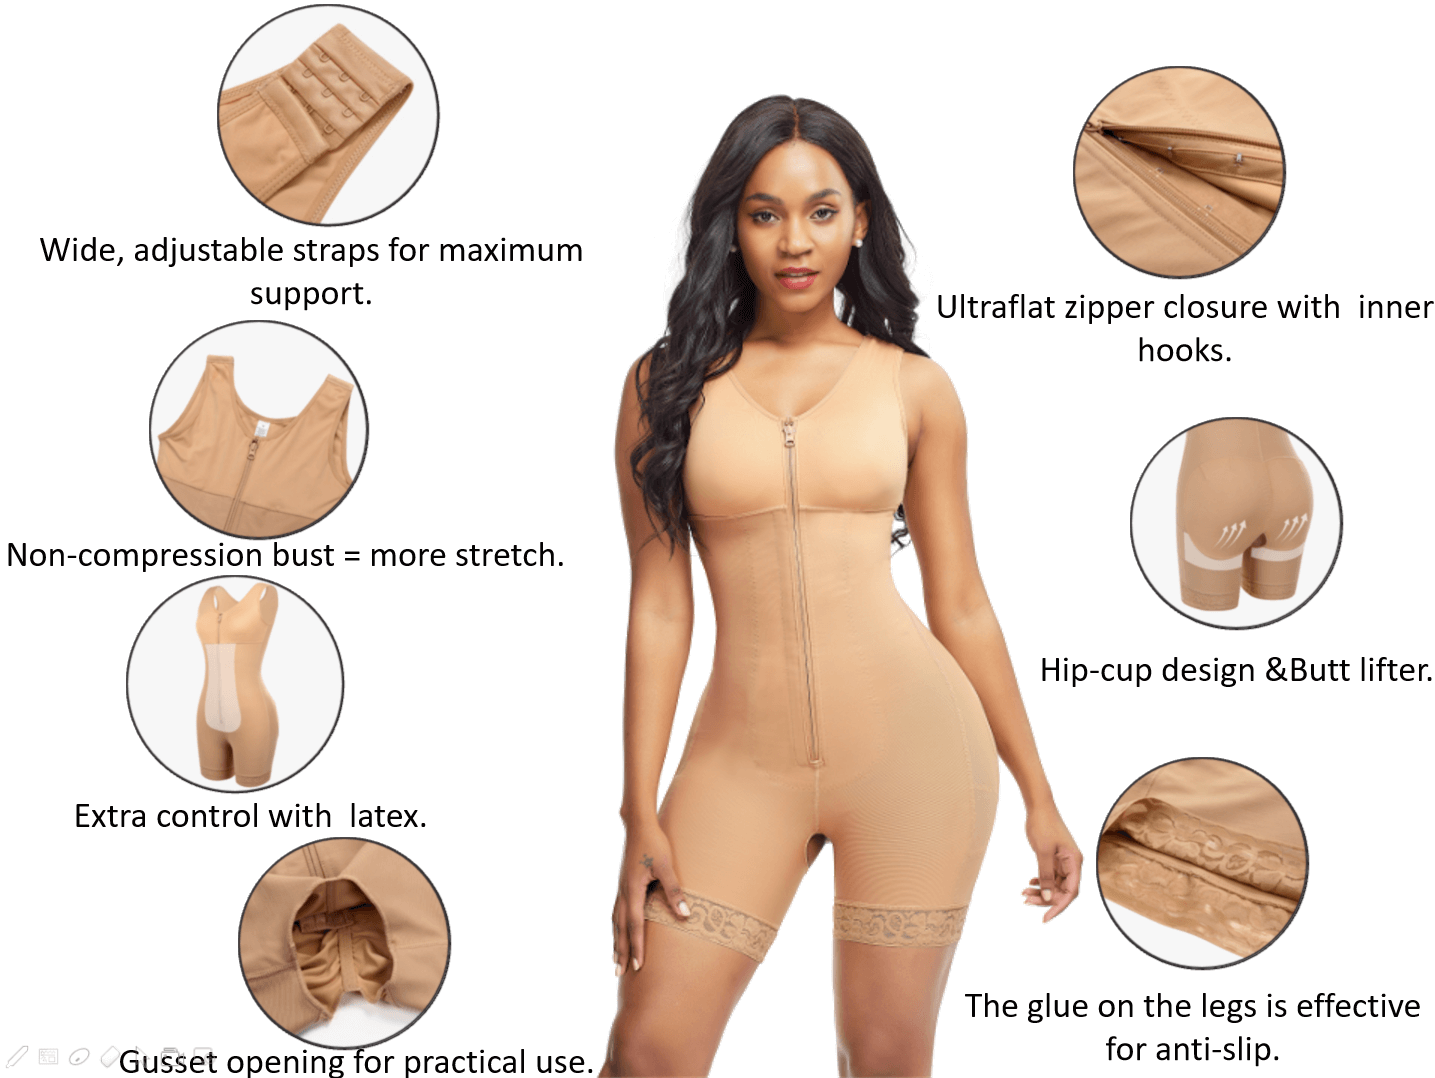 Loverbeauty Full Bodysuit Zippered Slimming Shaper